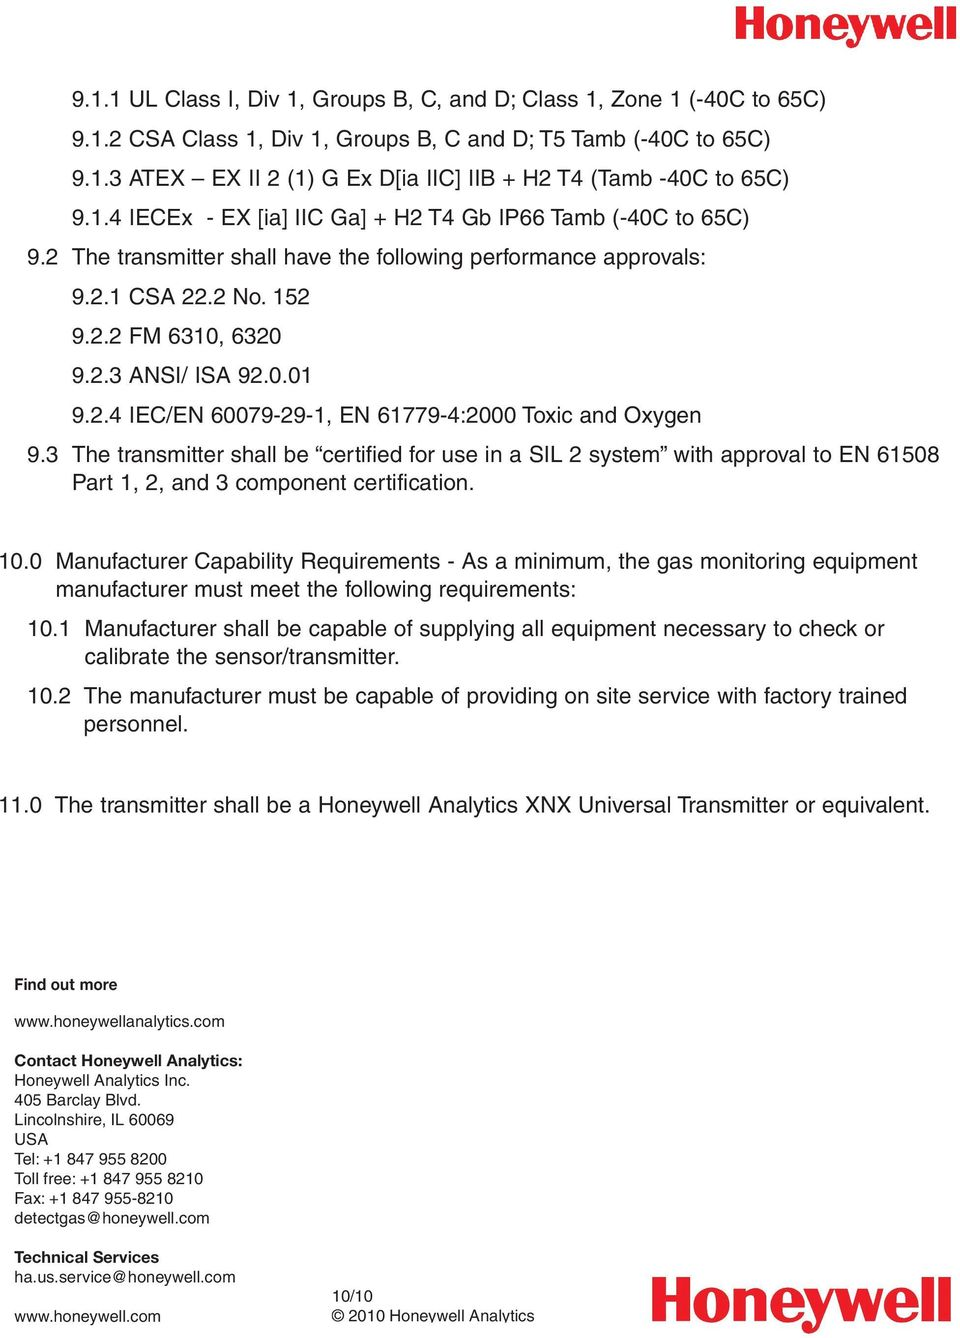 2.4 IEC/EN 60079-29-1, EN 61779-4:2000 Toxic and Oxygen 9.3 The transmitter shall be certified for use in a SIL 2 system with approval to EN 61508 Part 1, 2, and 3 component certification. 10.